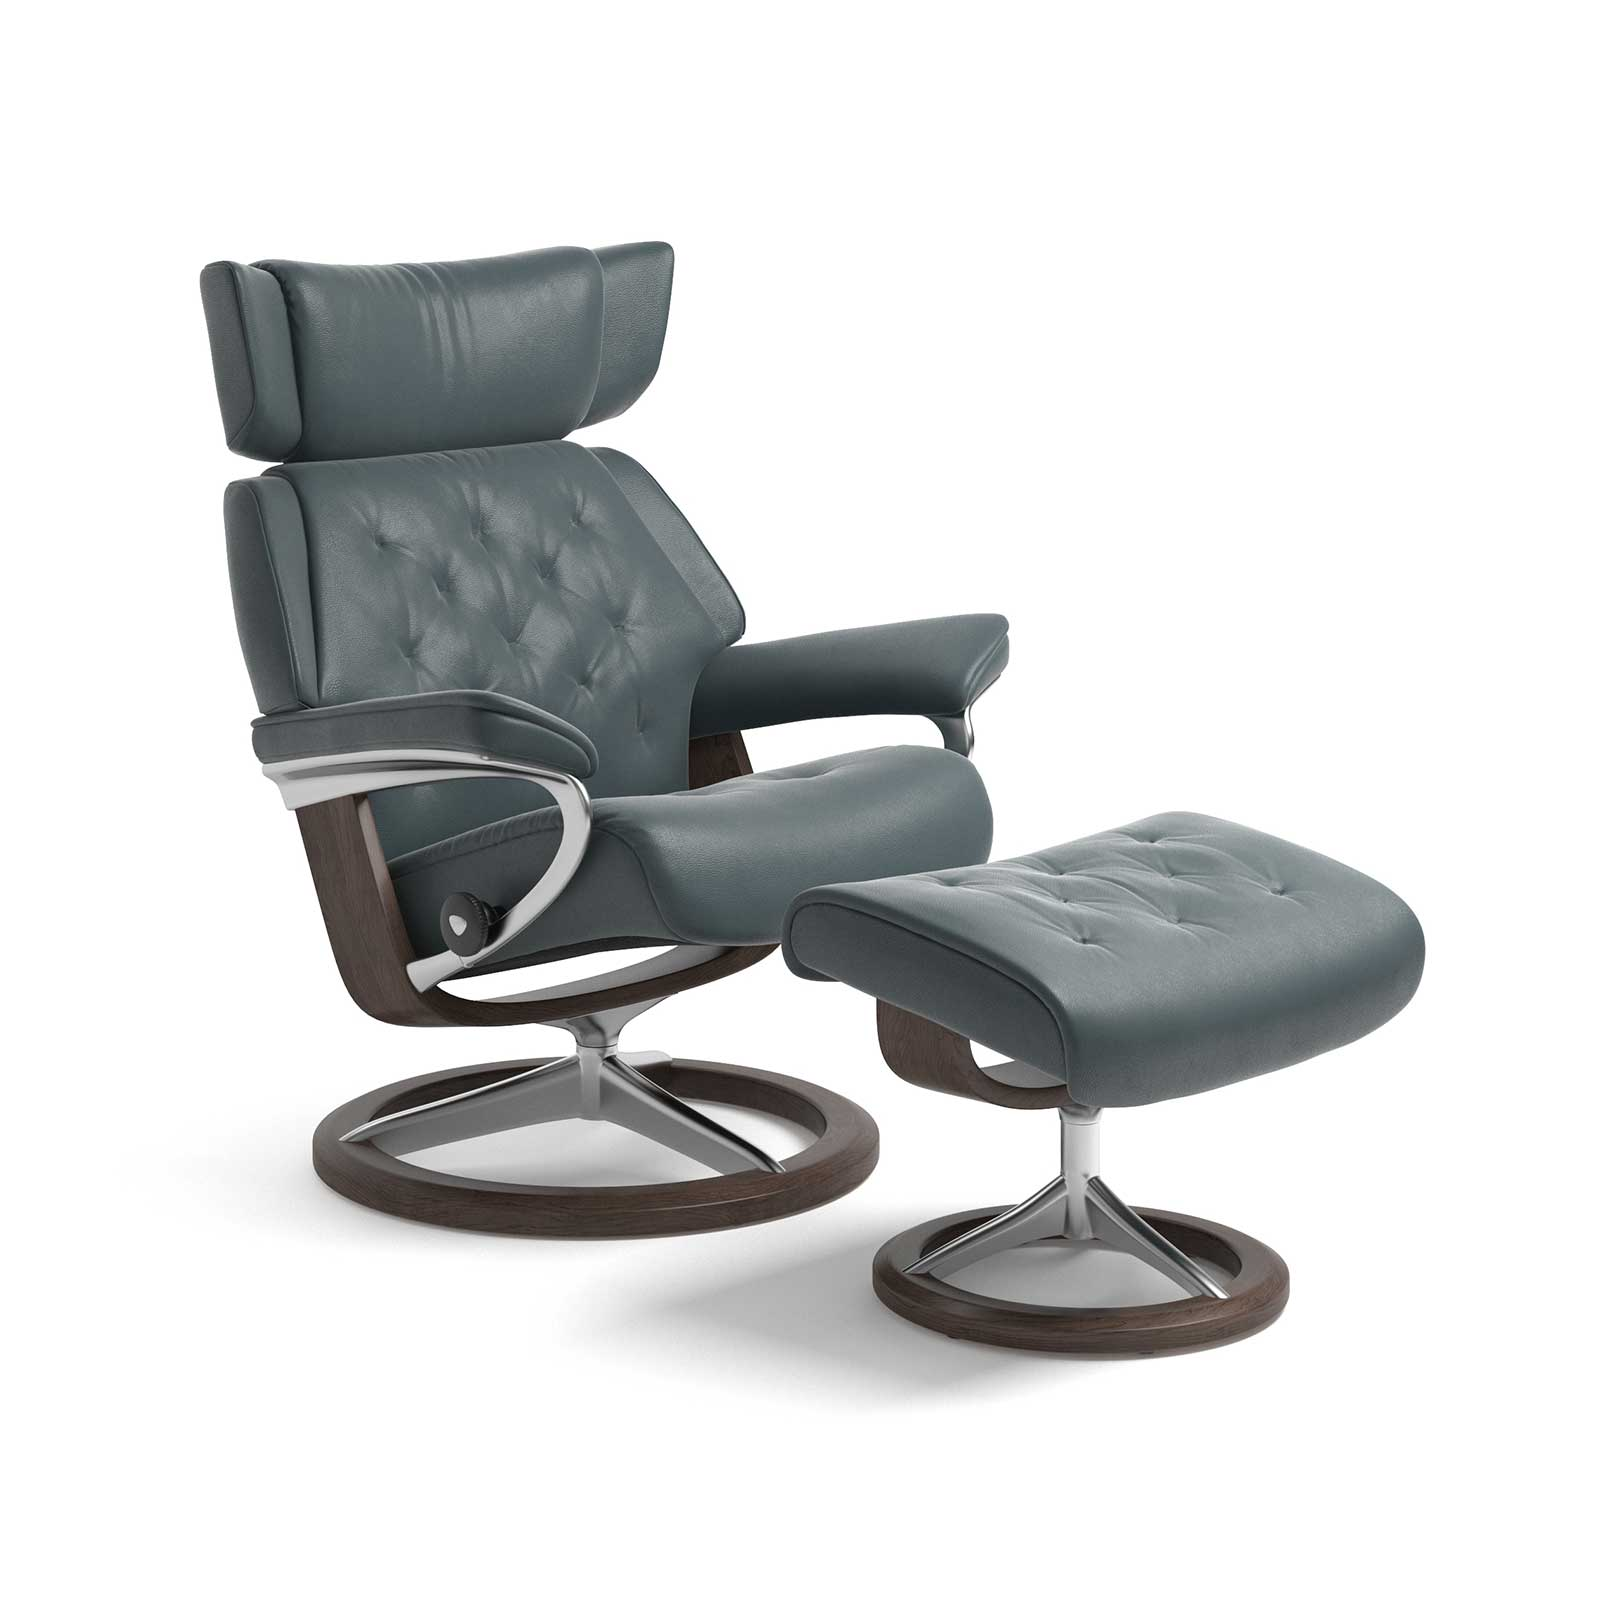 Stressless Sessel Skyline Cori Petrol Signature Mit Hocker